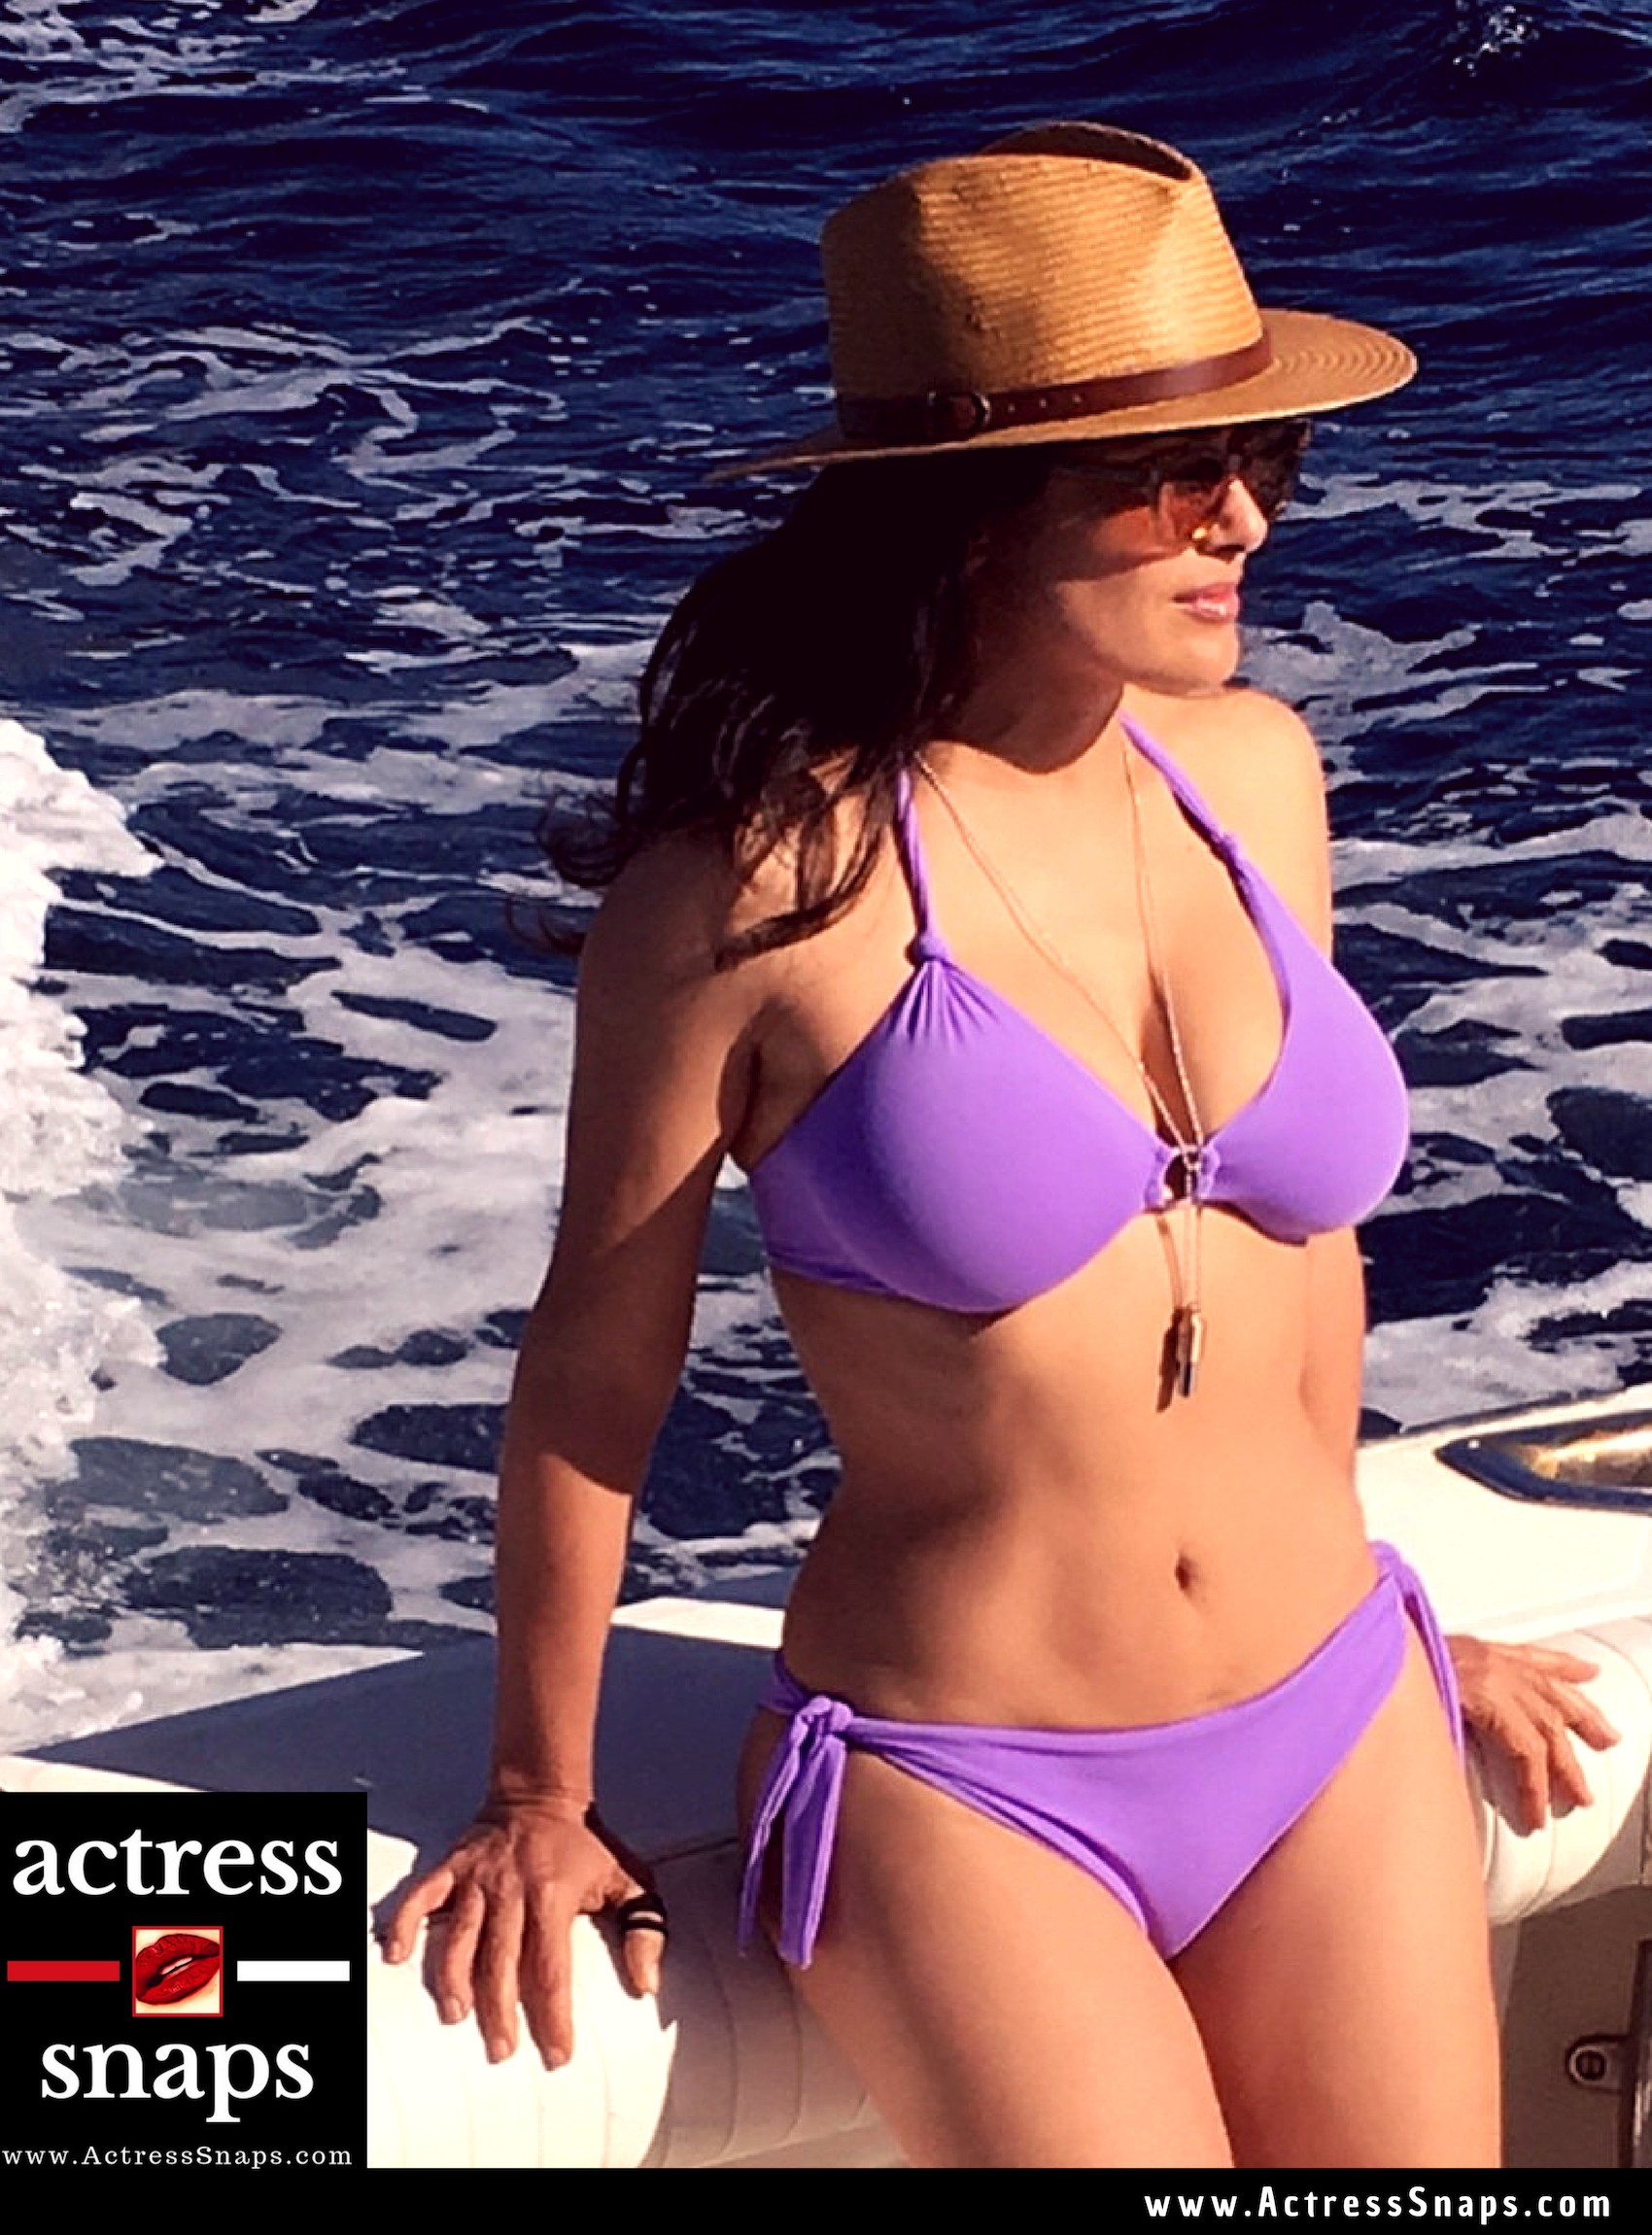 Hot Salma Hayek on Beach - Sexy Actress Pictures | Hot Actress Pictures - ActressSnaps.com